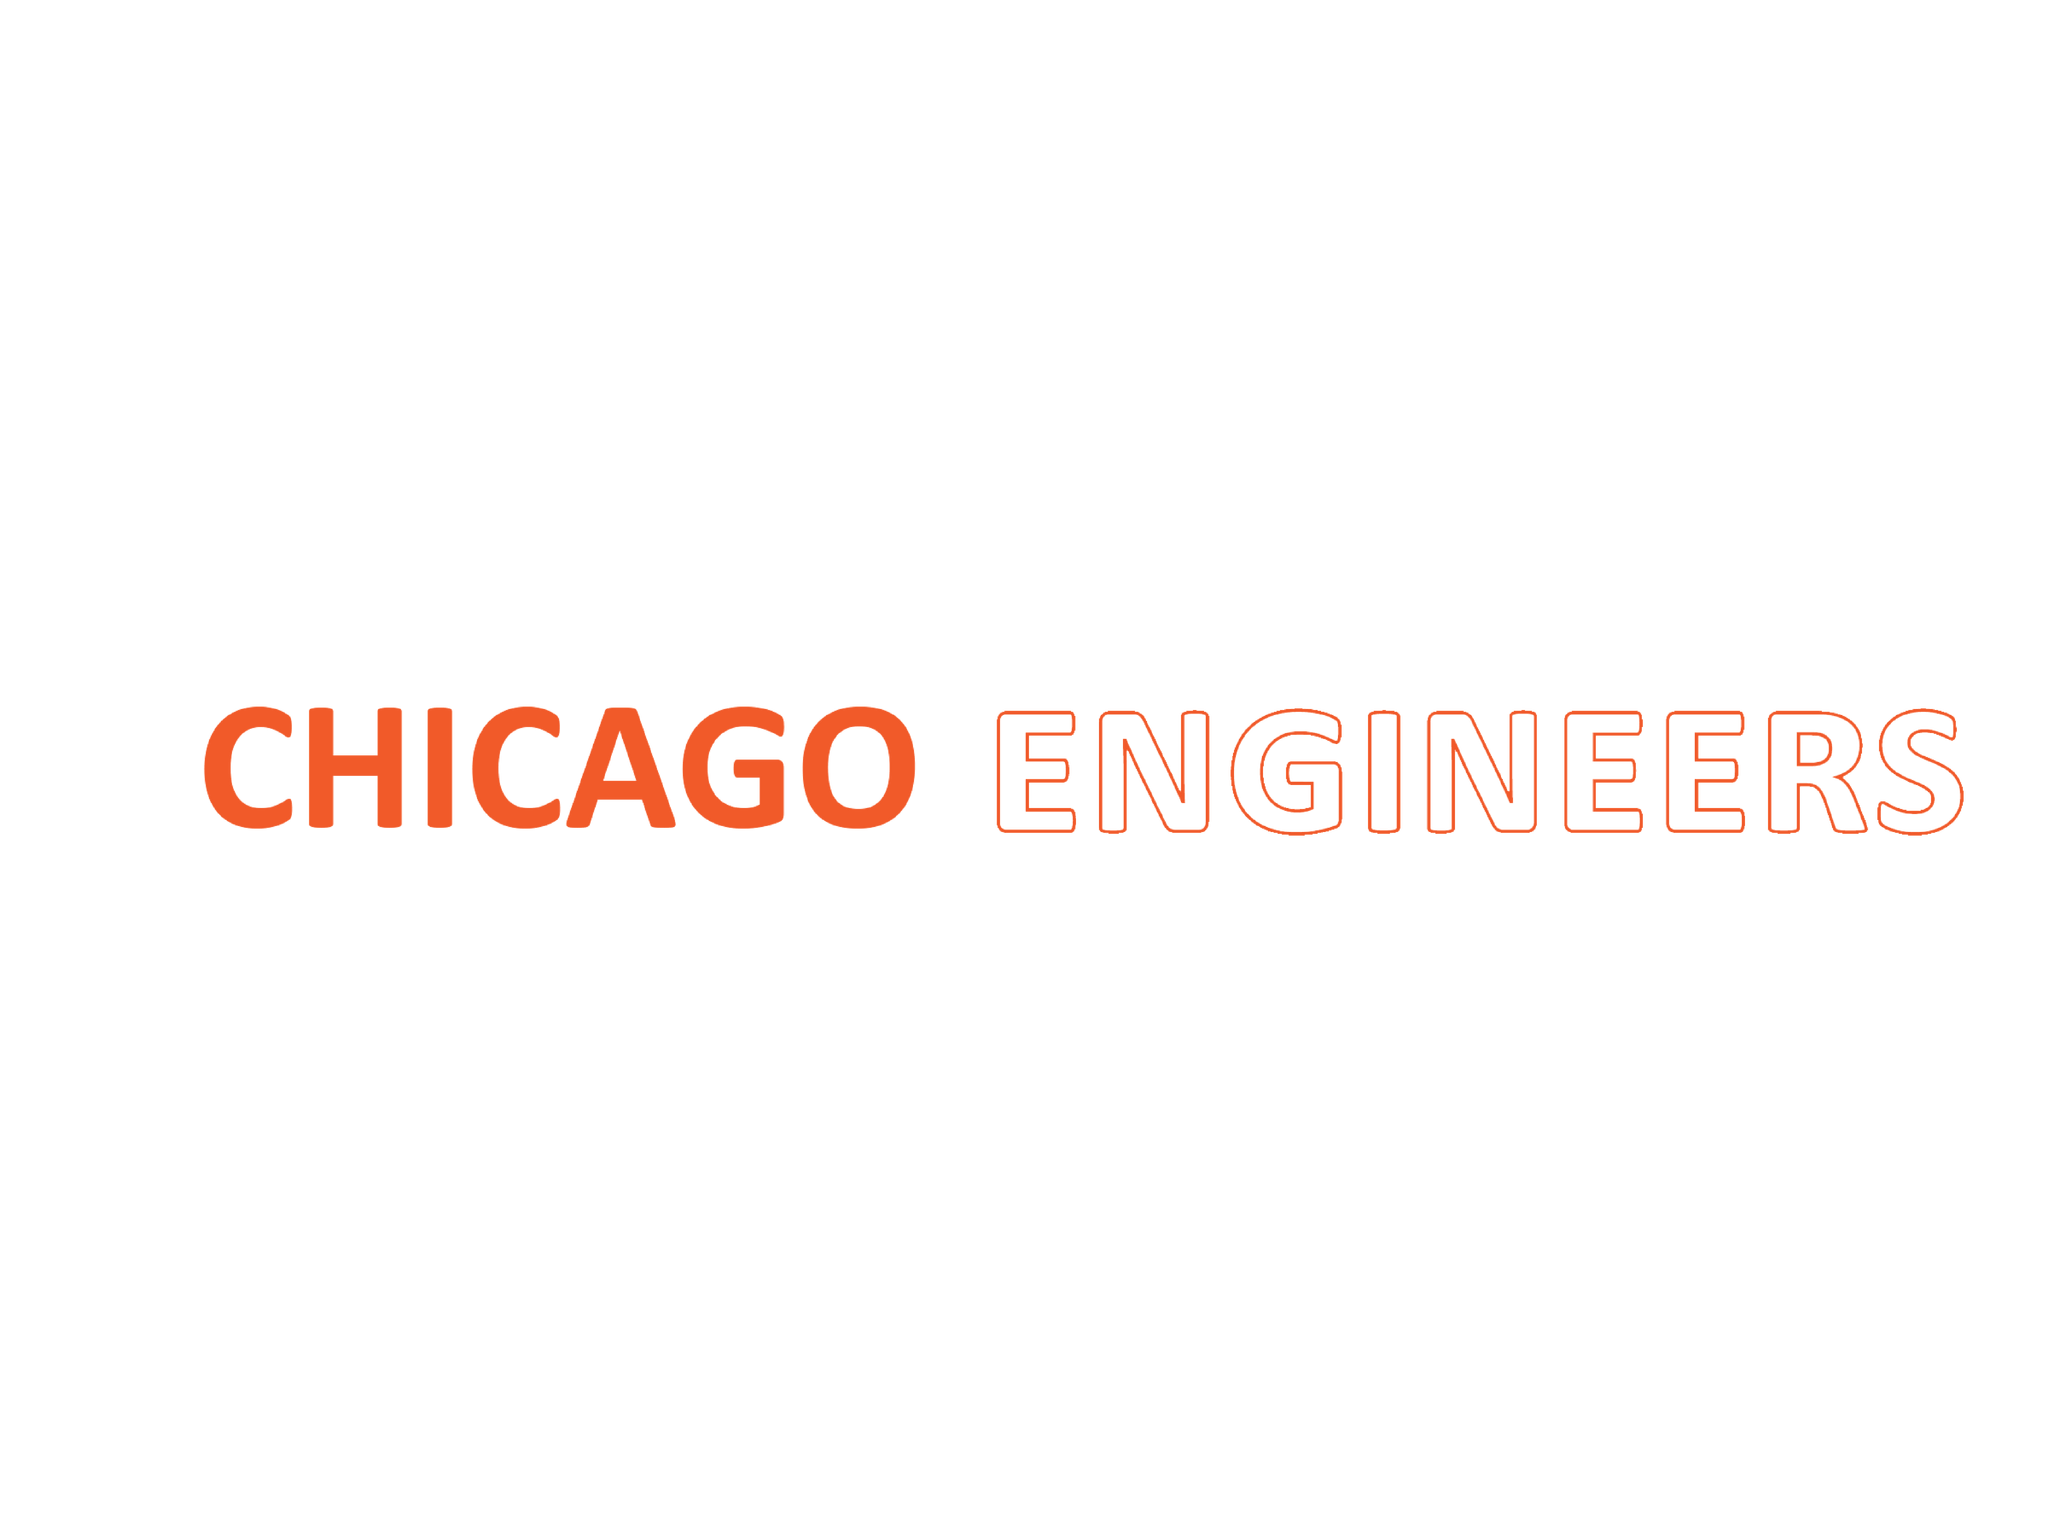 Chicago Engineers